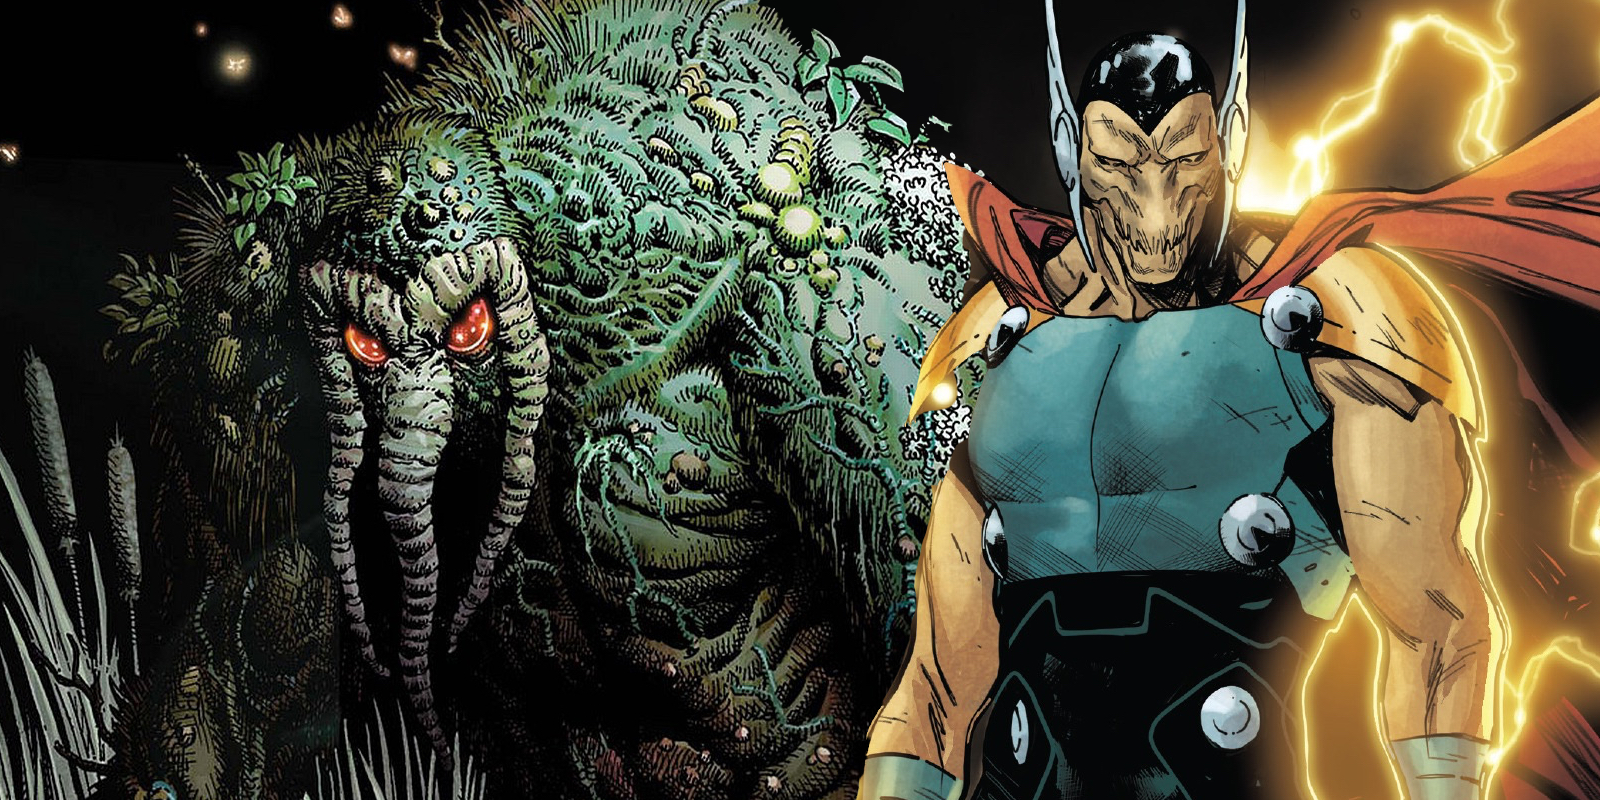 Man-Thing Beta Ray Bill Thor Ragnarok